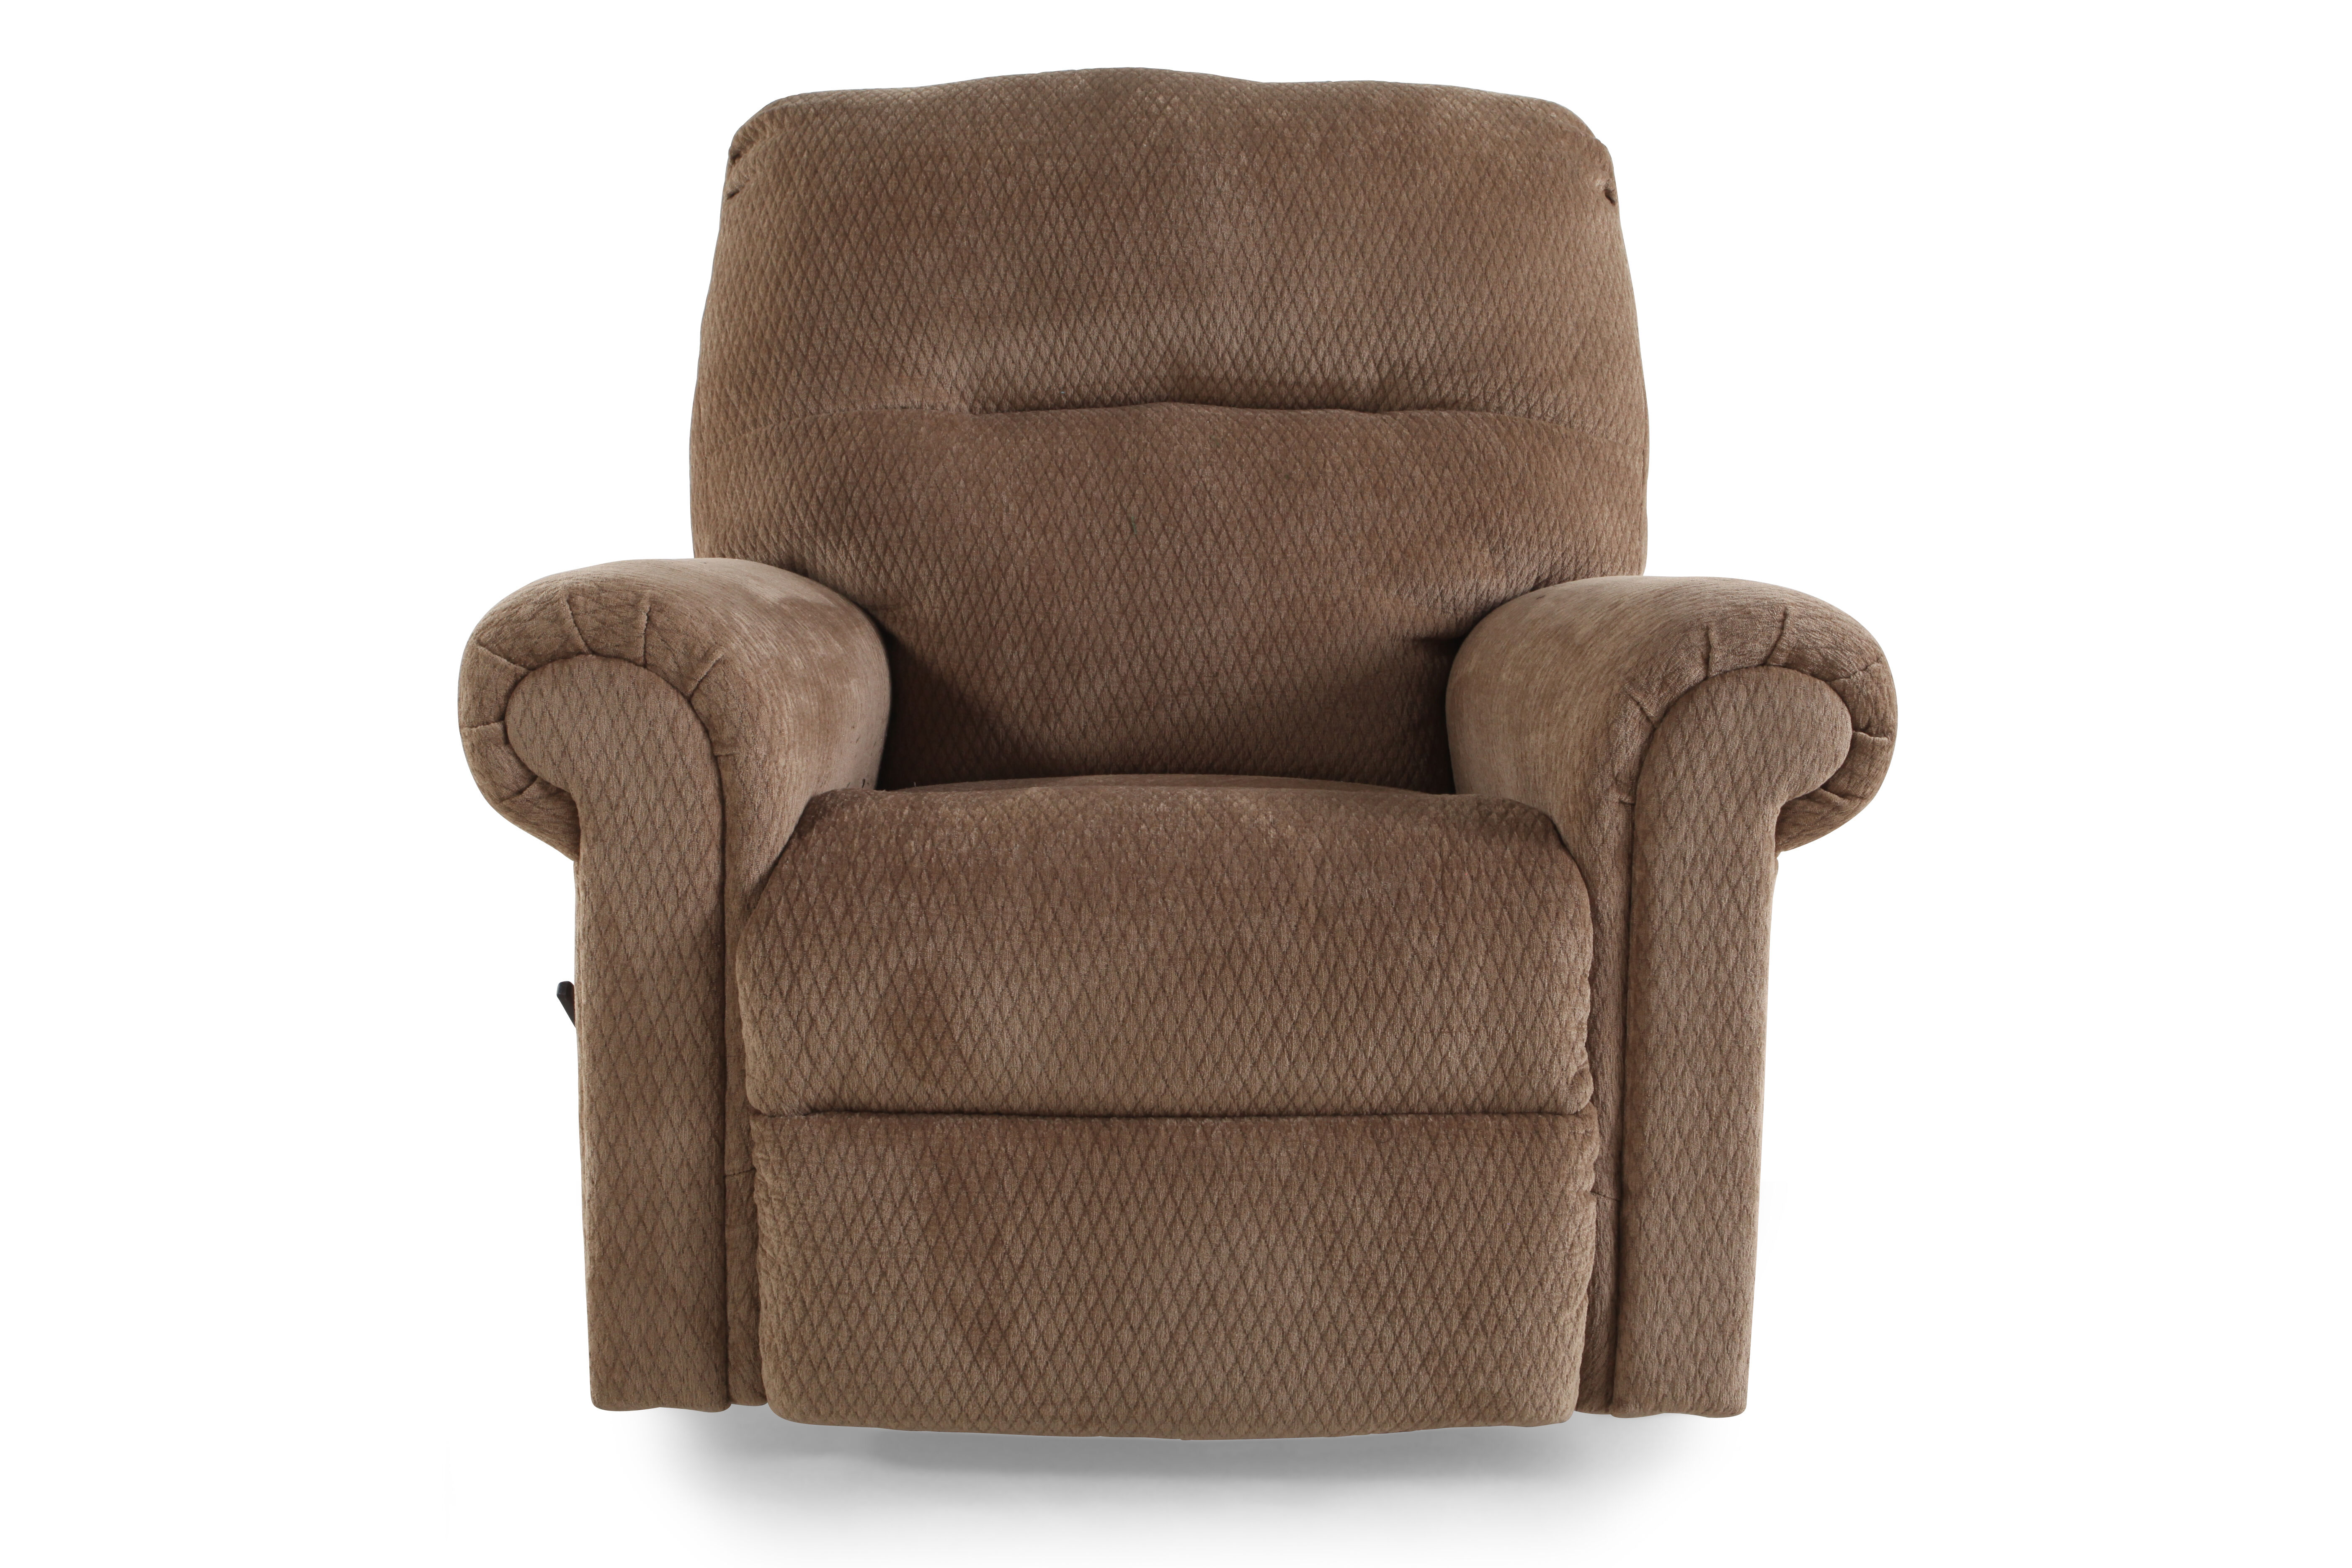 Ashley Skyeslee Mocha Rocker Recliner  sc 1 st  Mathis Brothers & Ashley Skyeslee Mocha Rocker Recliner | Mathis Brothers Furniture islam-shia.org